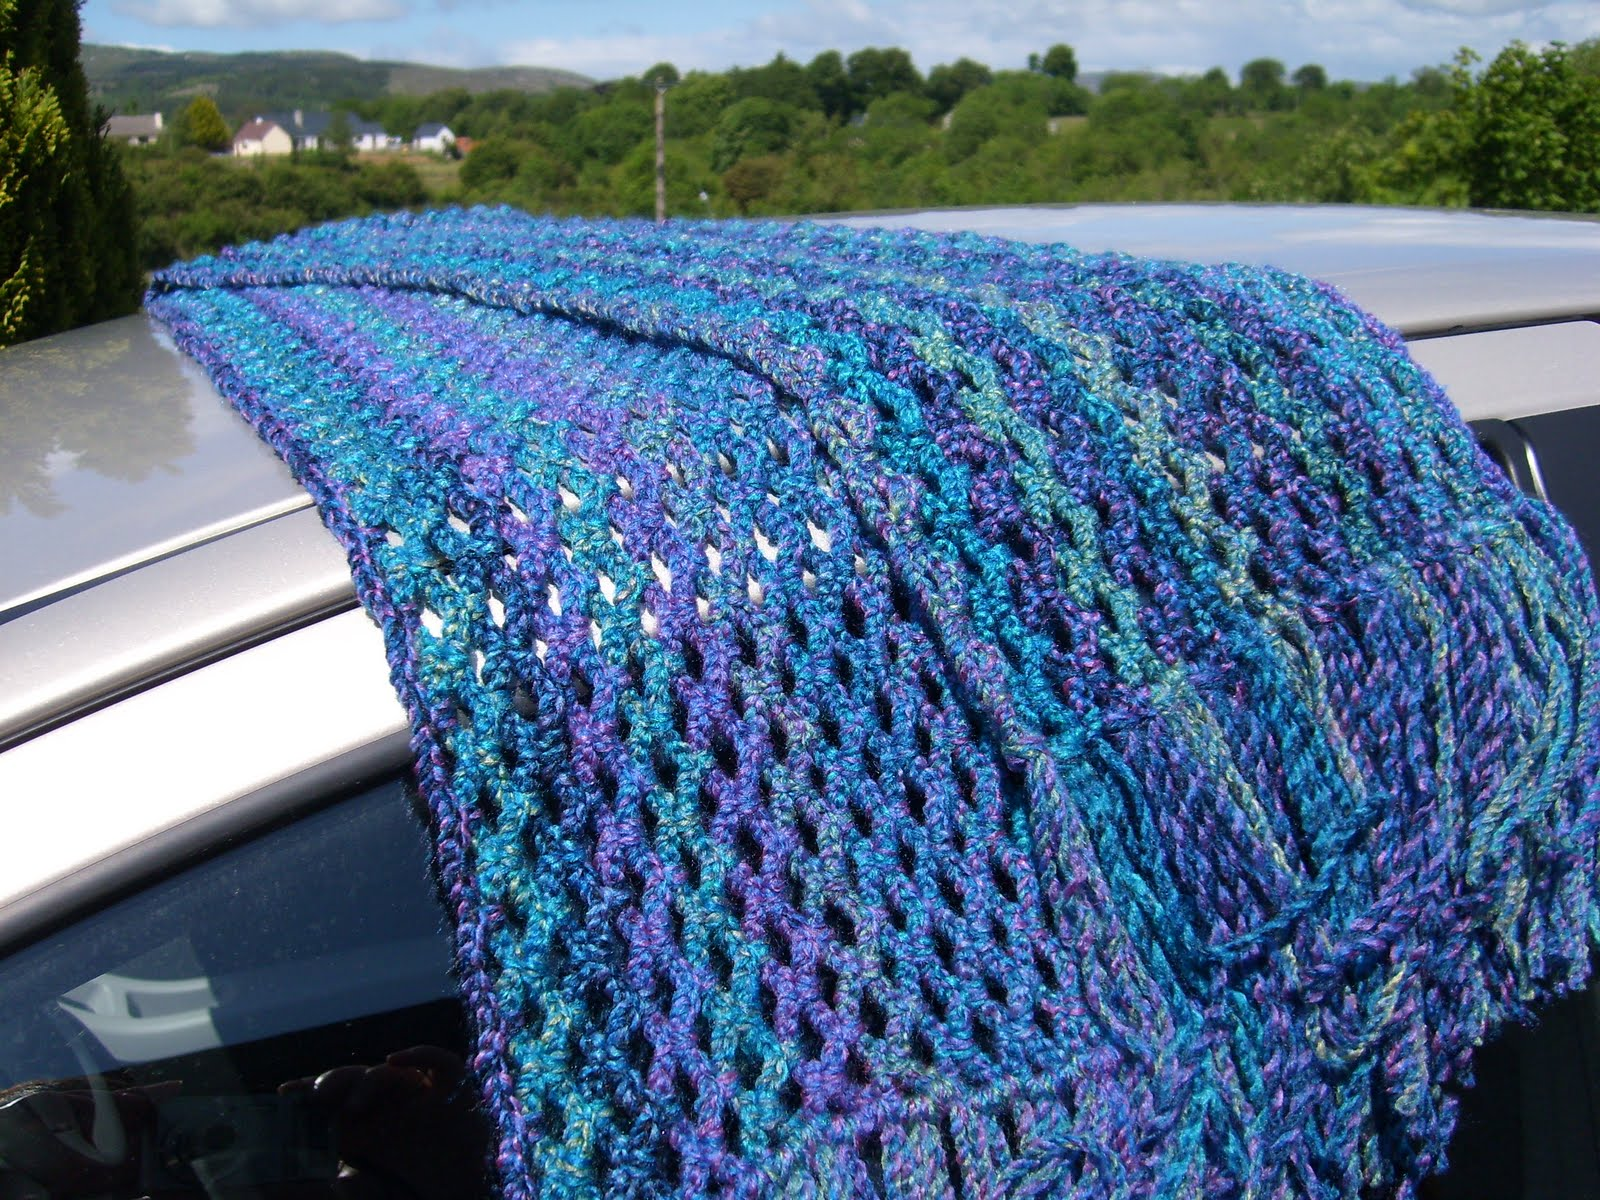 Pie in the Sky Crochet: Easy chain lace scarf